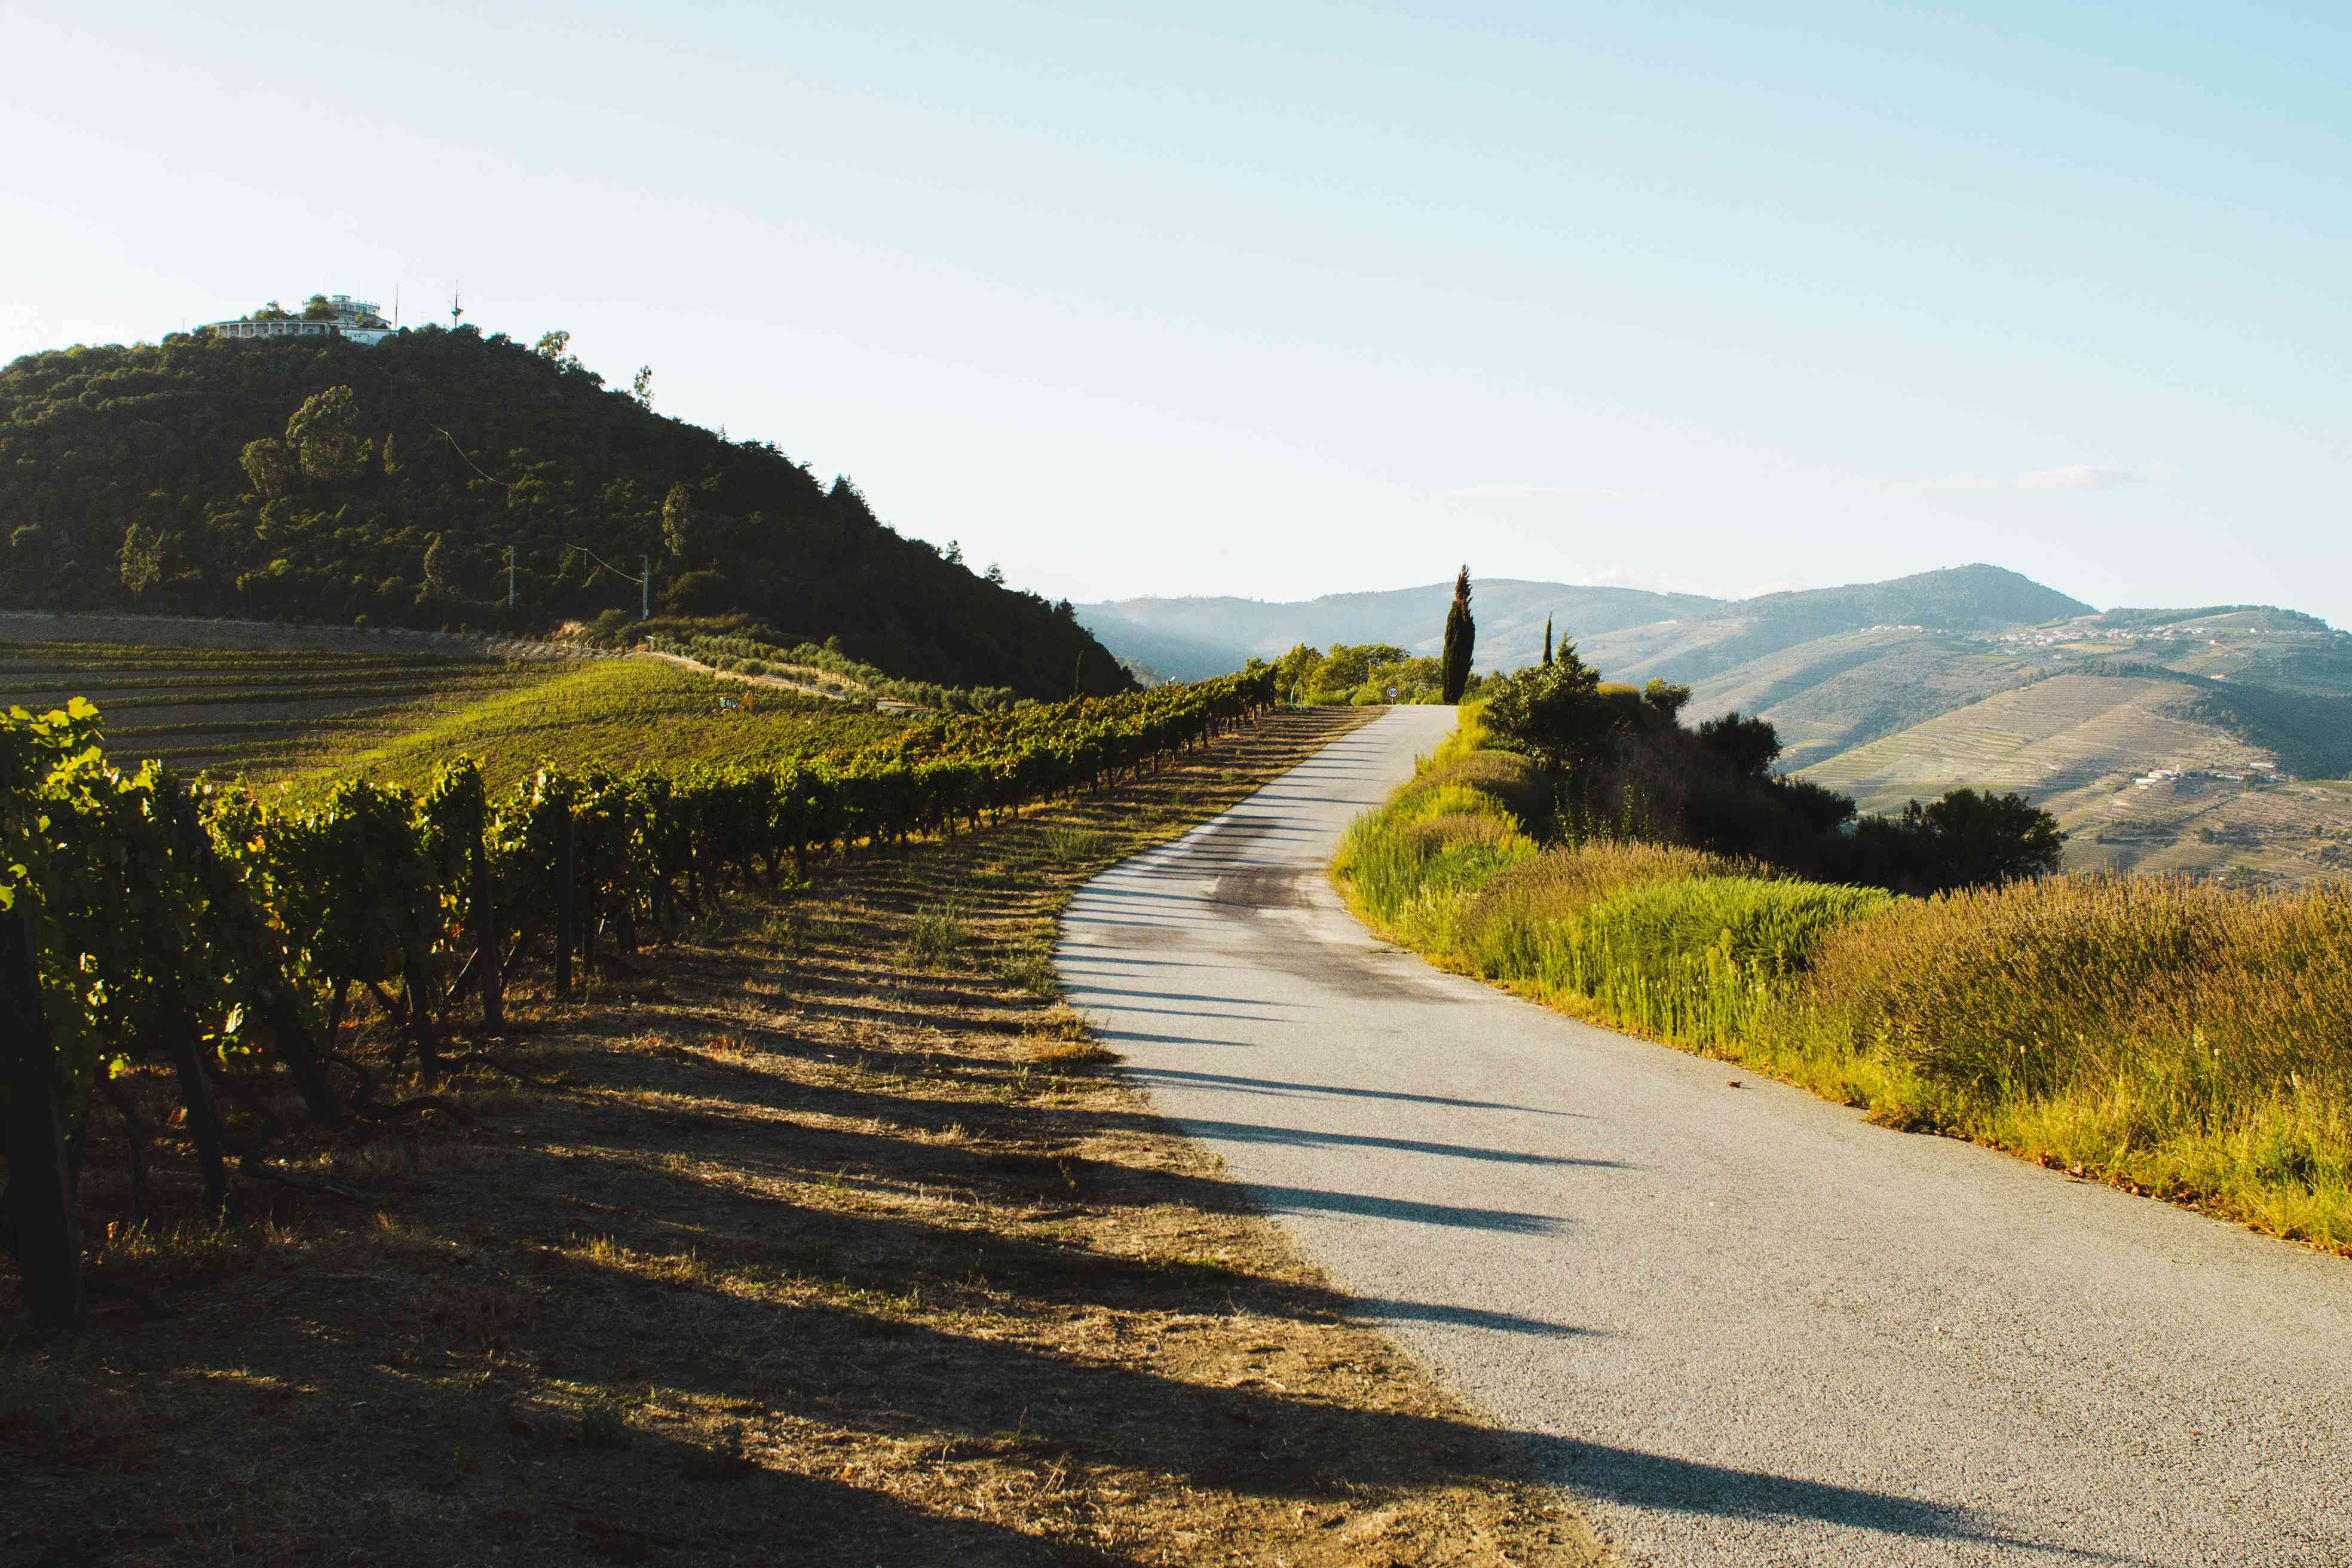 Long shadows being cast on a road from the vines